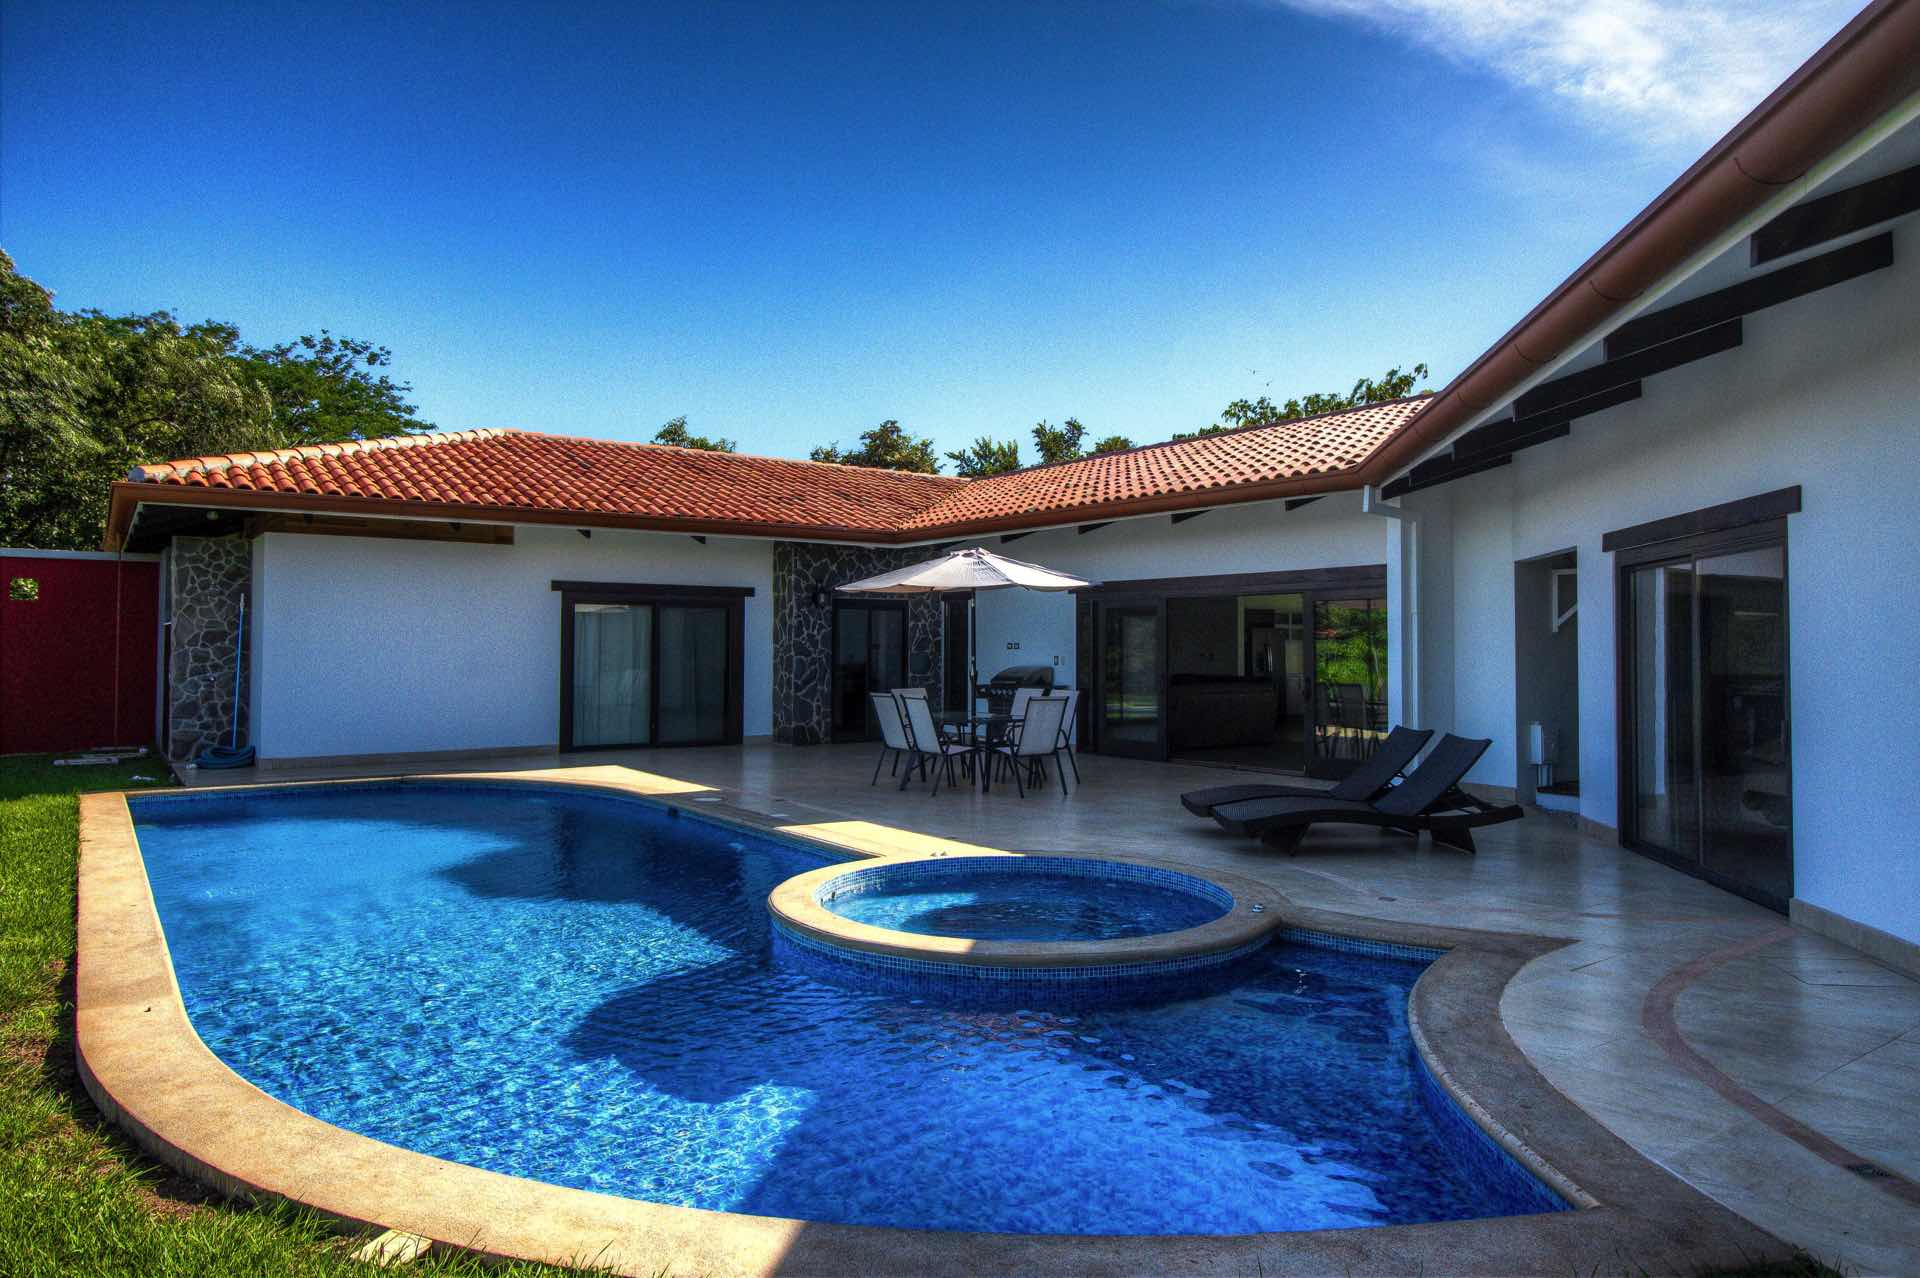 Enjoy our lovely large private pool